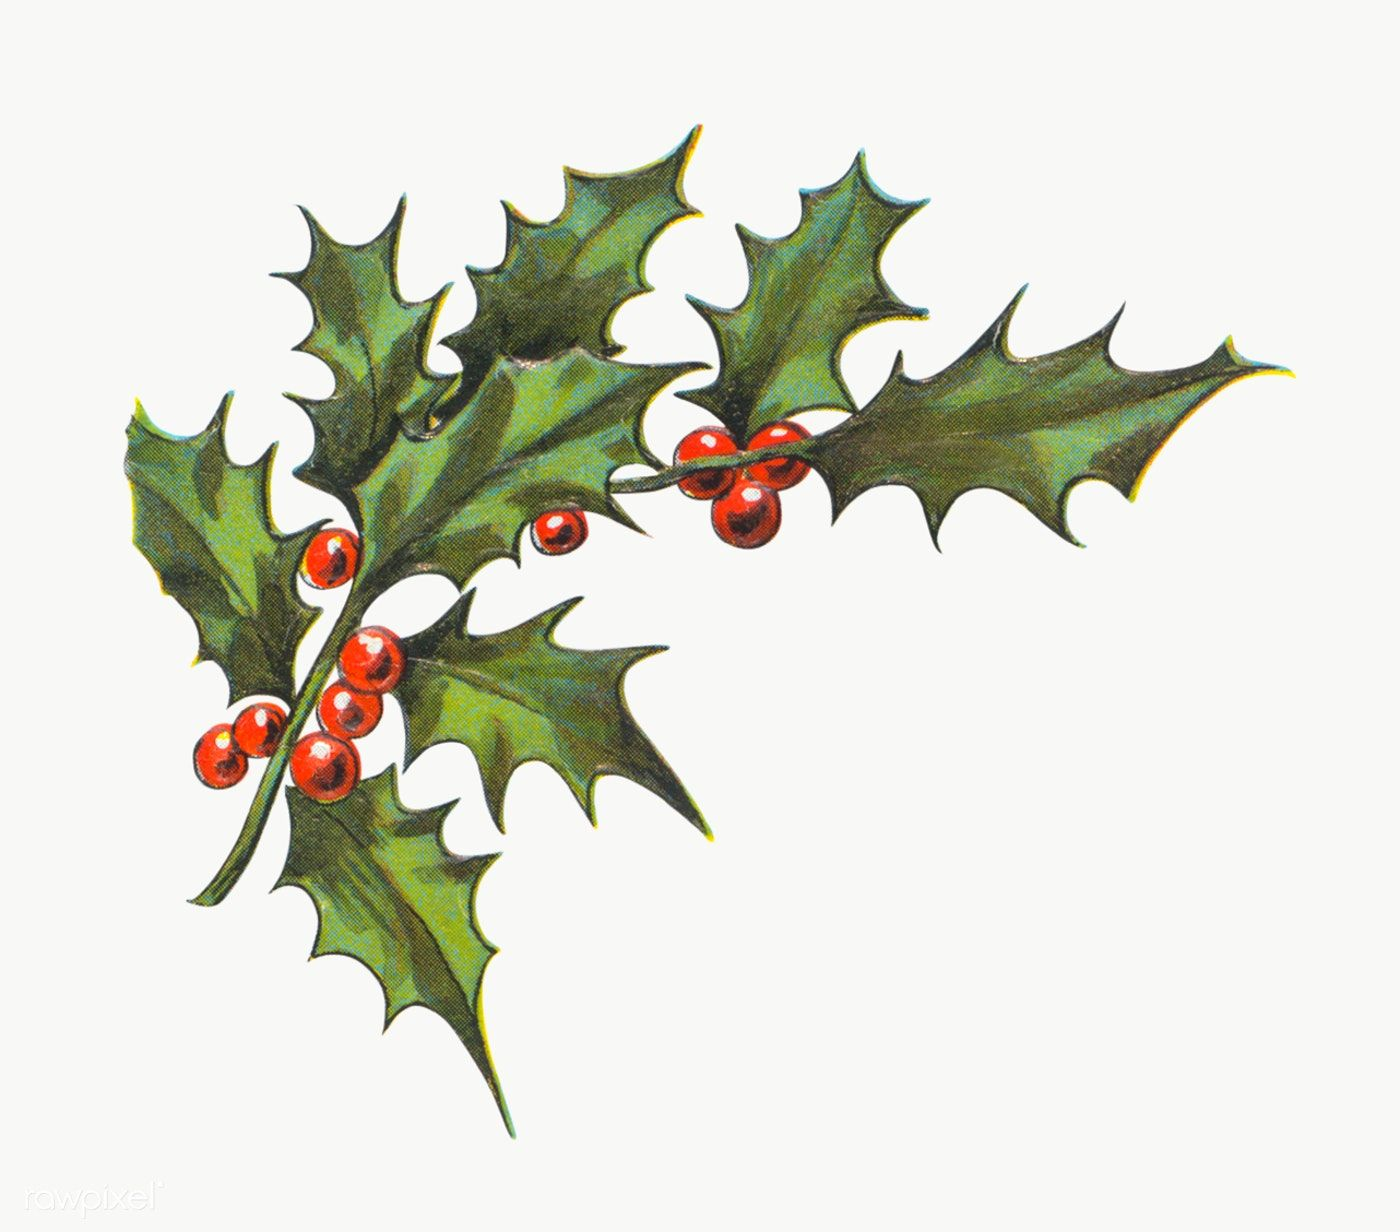 Festive Holly Leaves Transparent Png Premium Image By Rawpixel Com Nam Christmas Holly Images Holly Images Christmas Tattoo